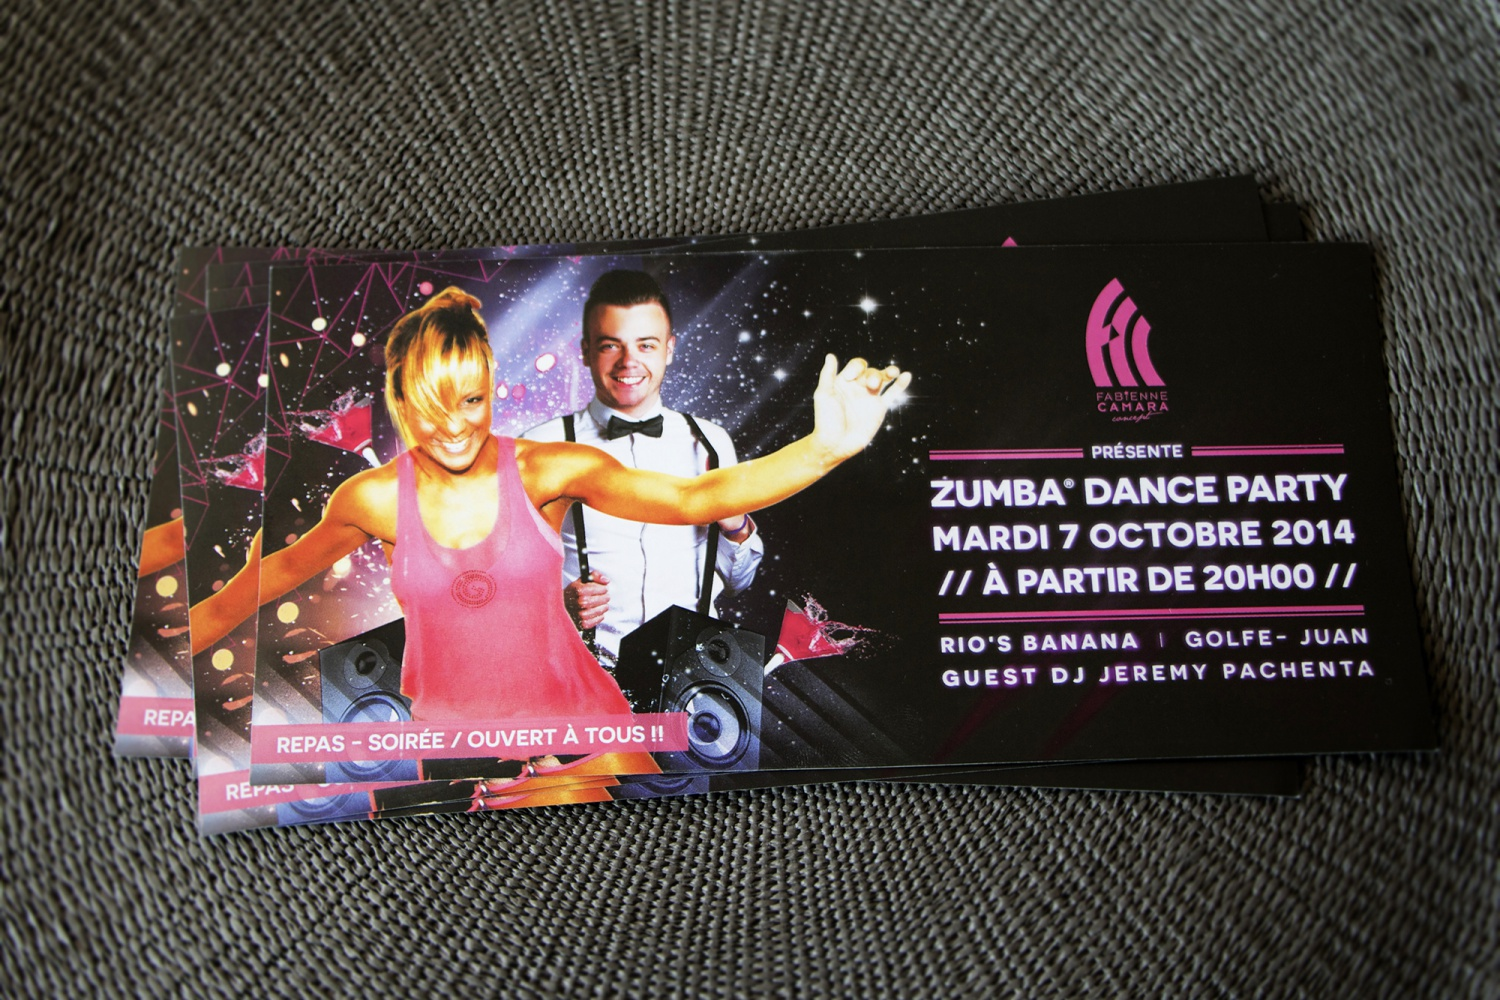 Zumba® Dance Party by Fabienne